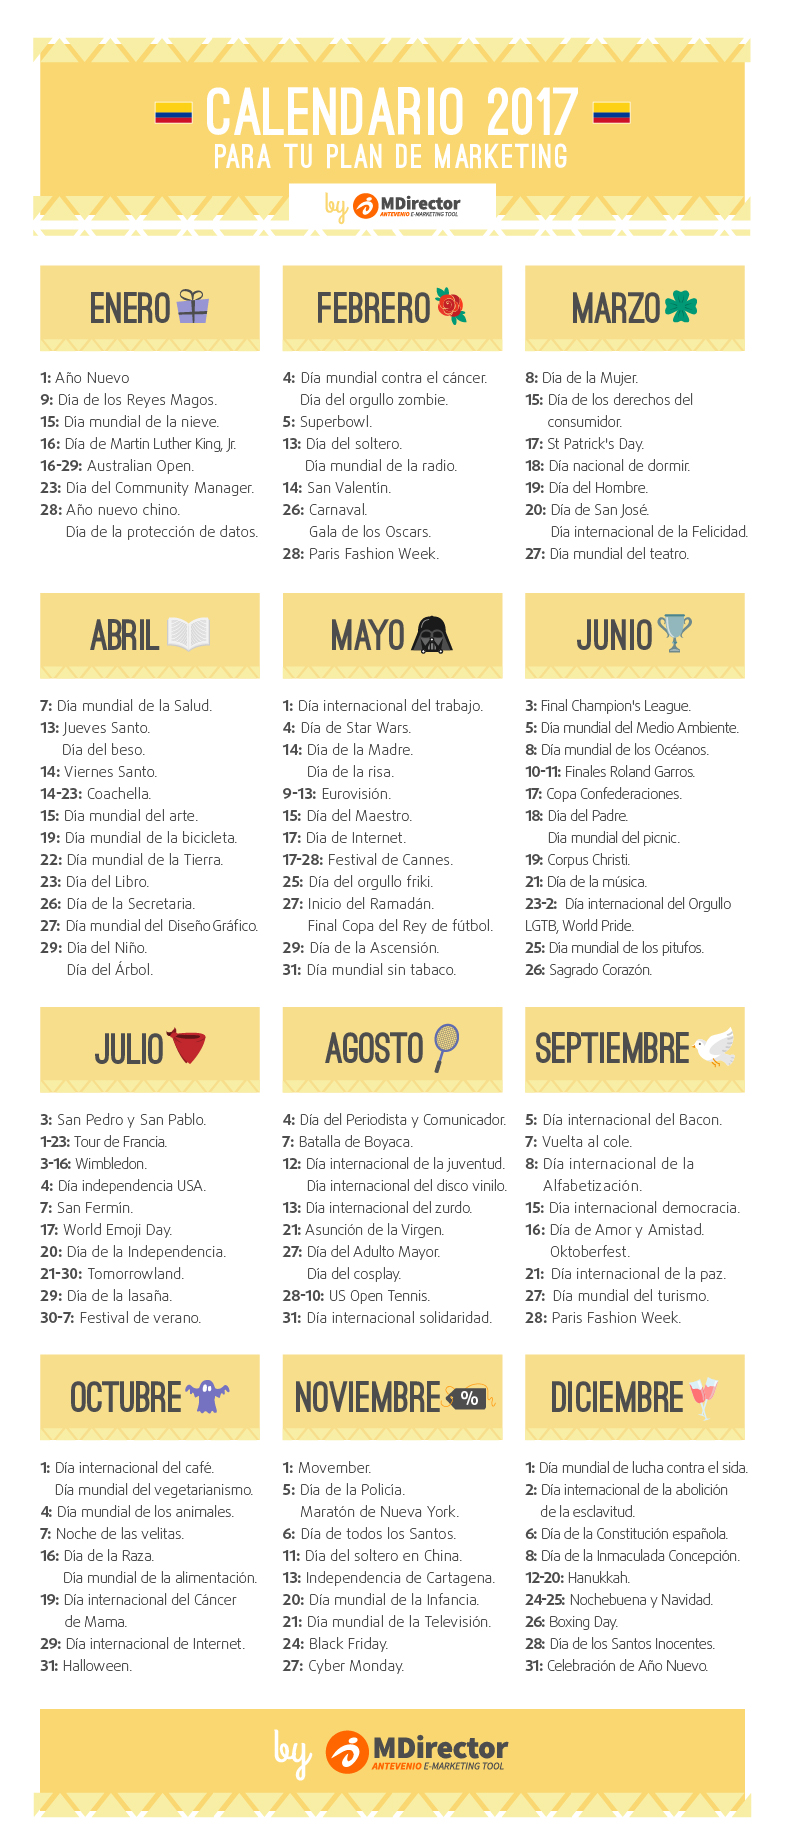 calendario de marketing 2017 para Colombia